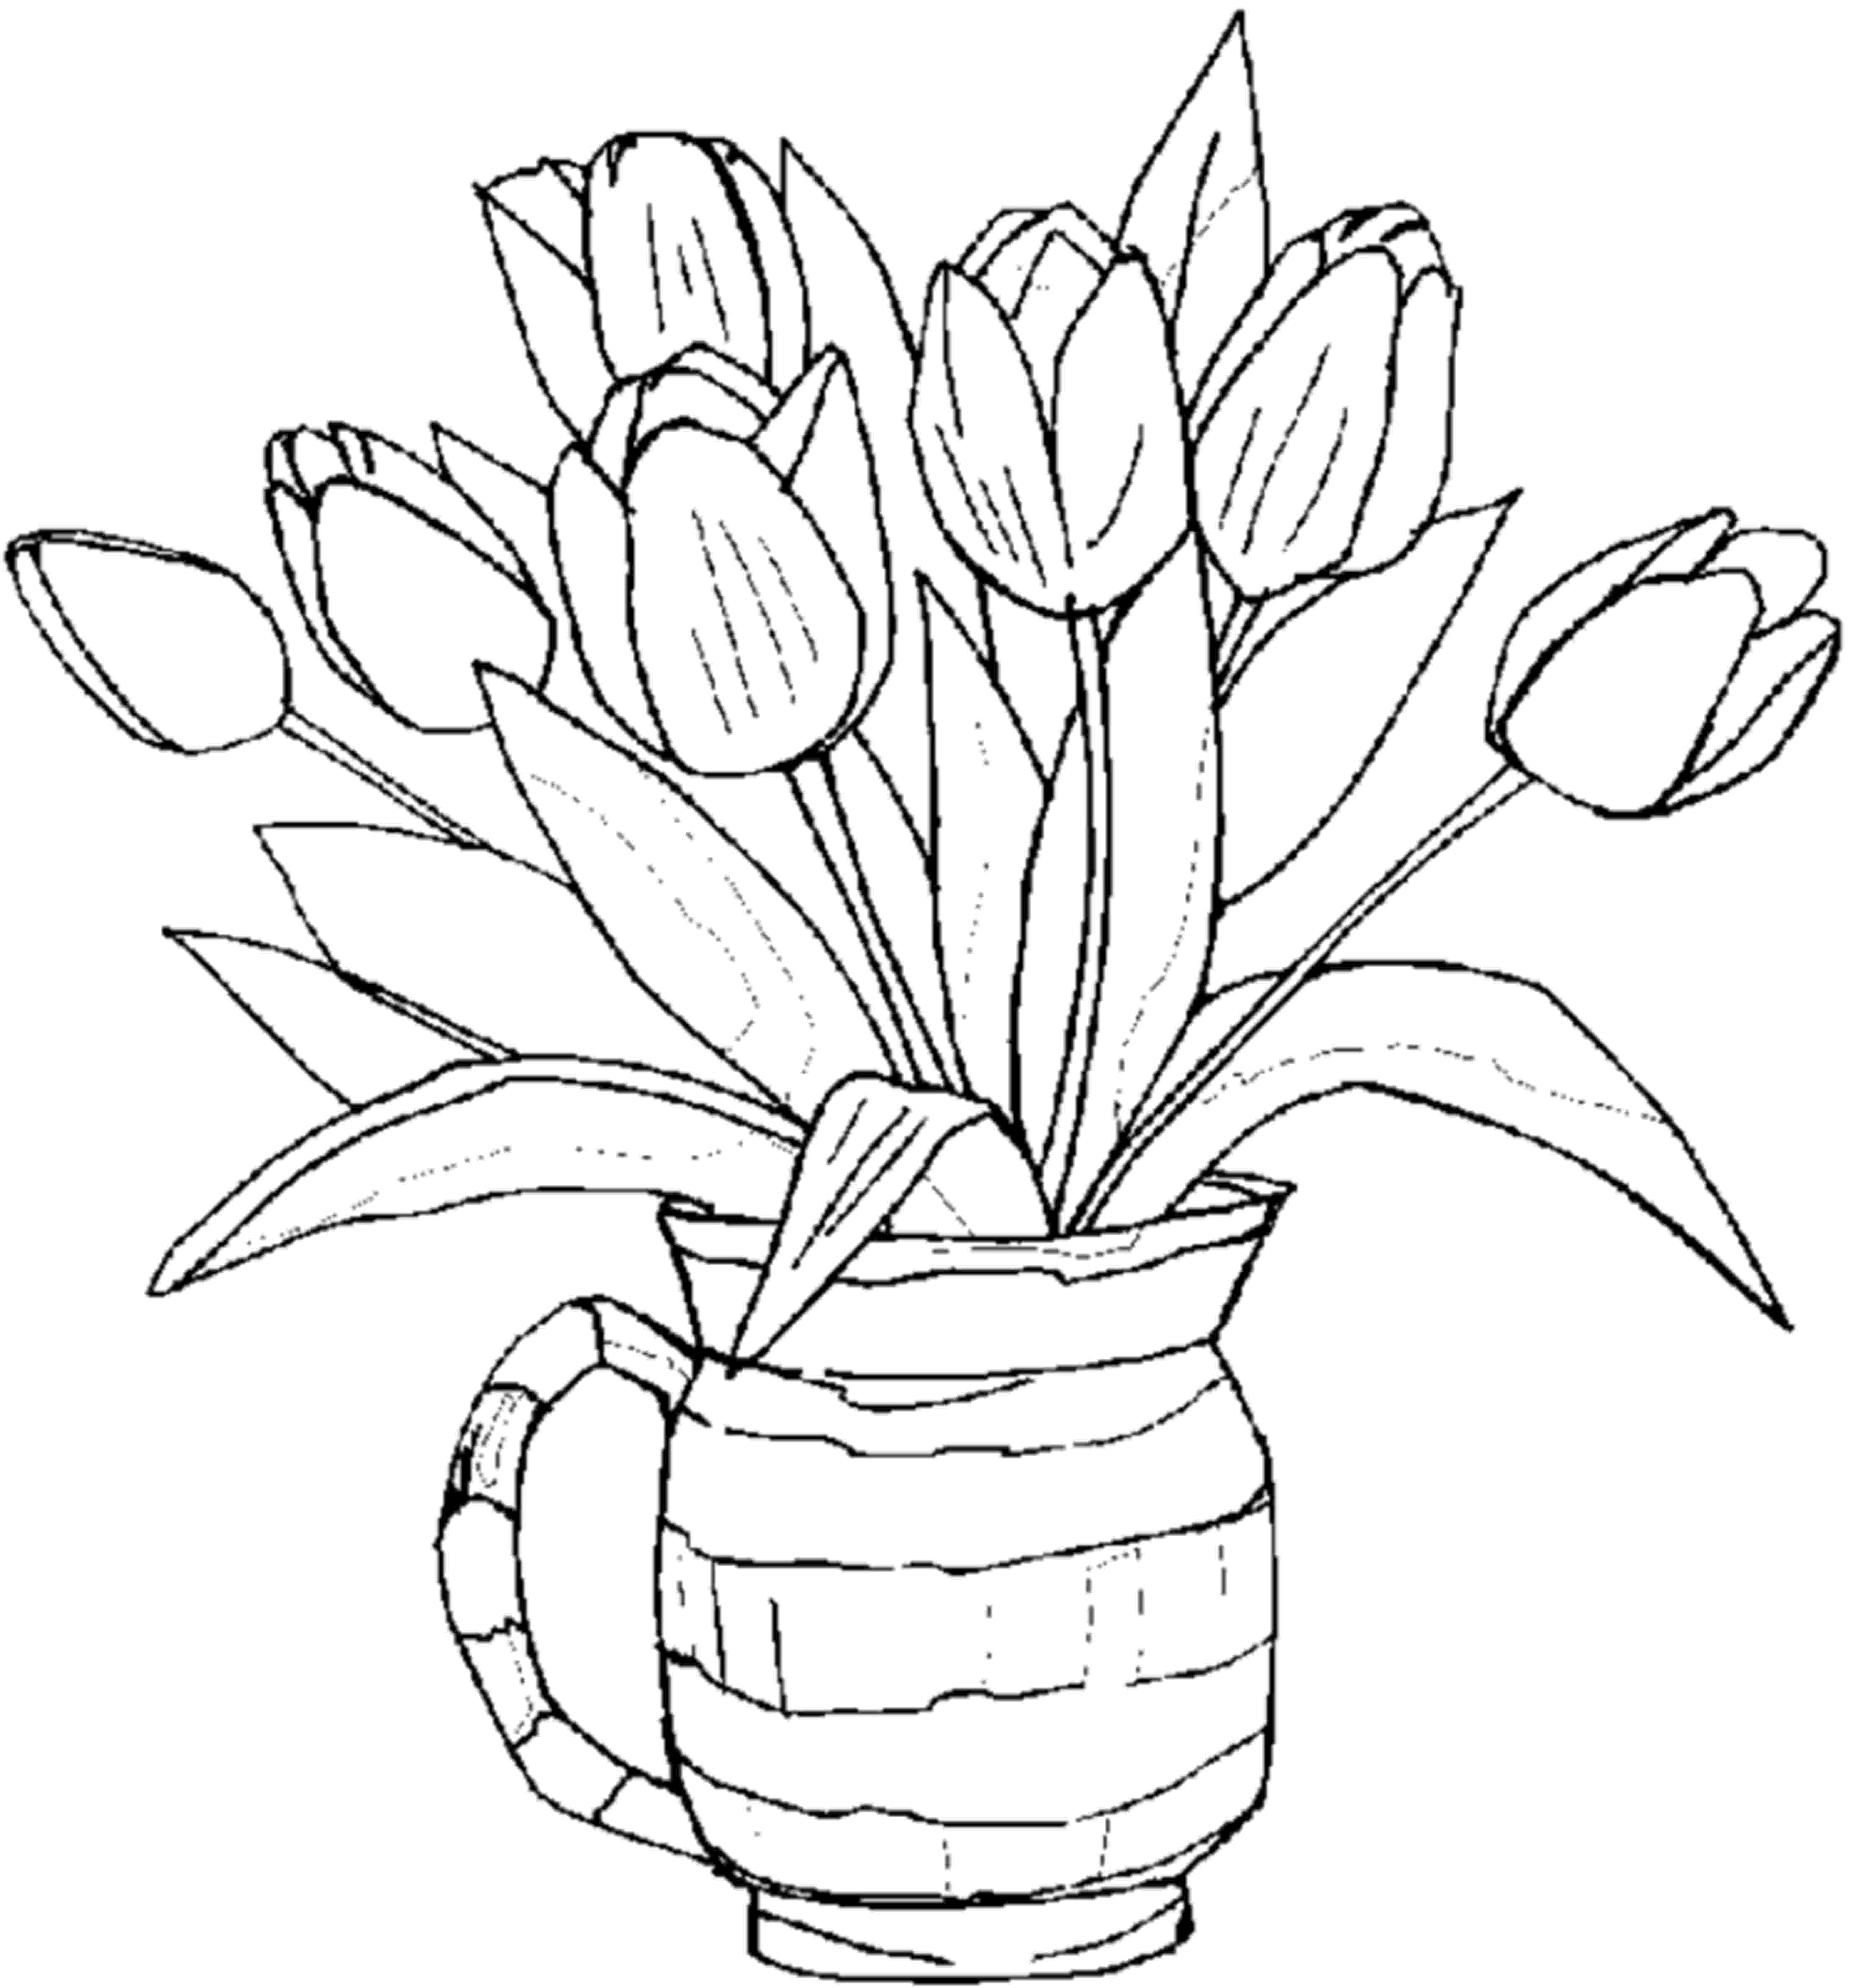 flowers coloring pages printable free printable flower coloring pages for kids best printable flowers coloring pages